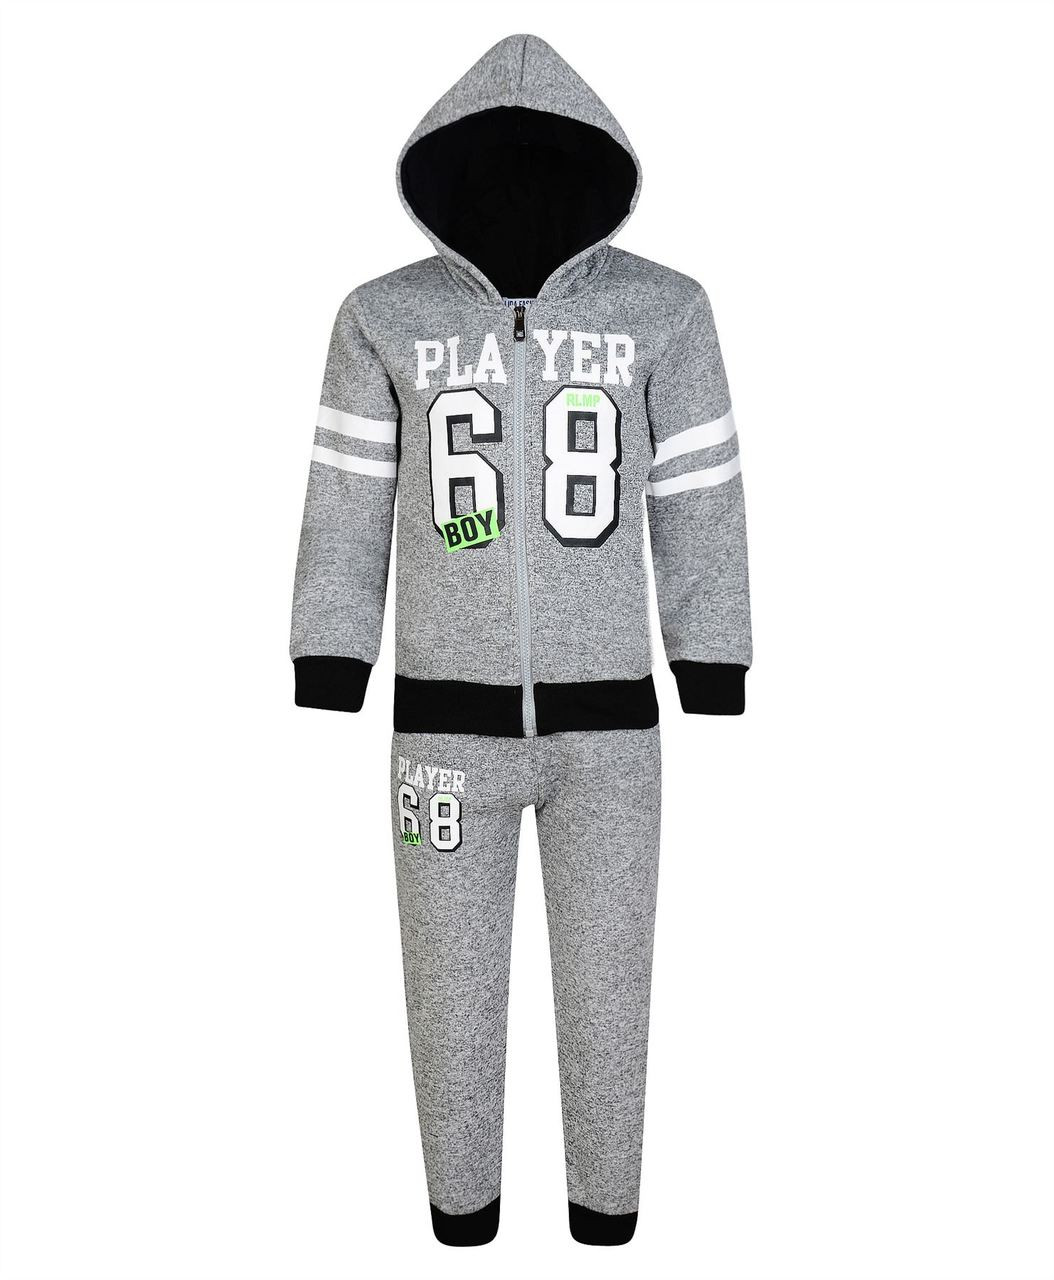 f65b7d5faa6 Kids Player Print Tracksuit Available in Various Colors